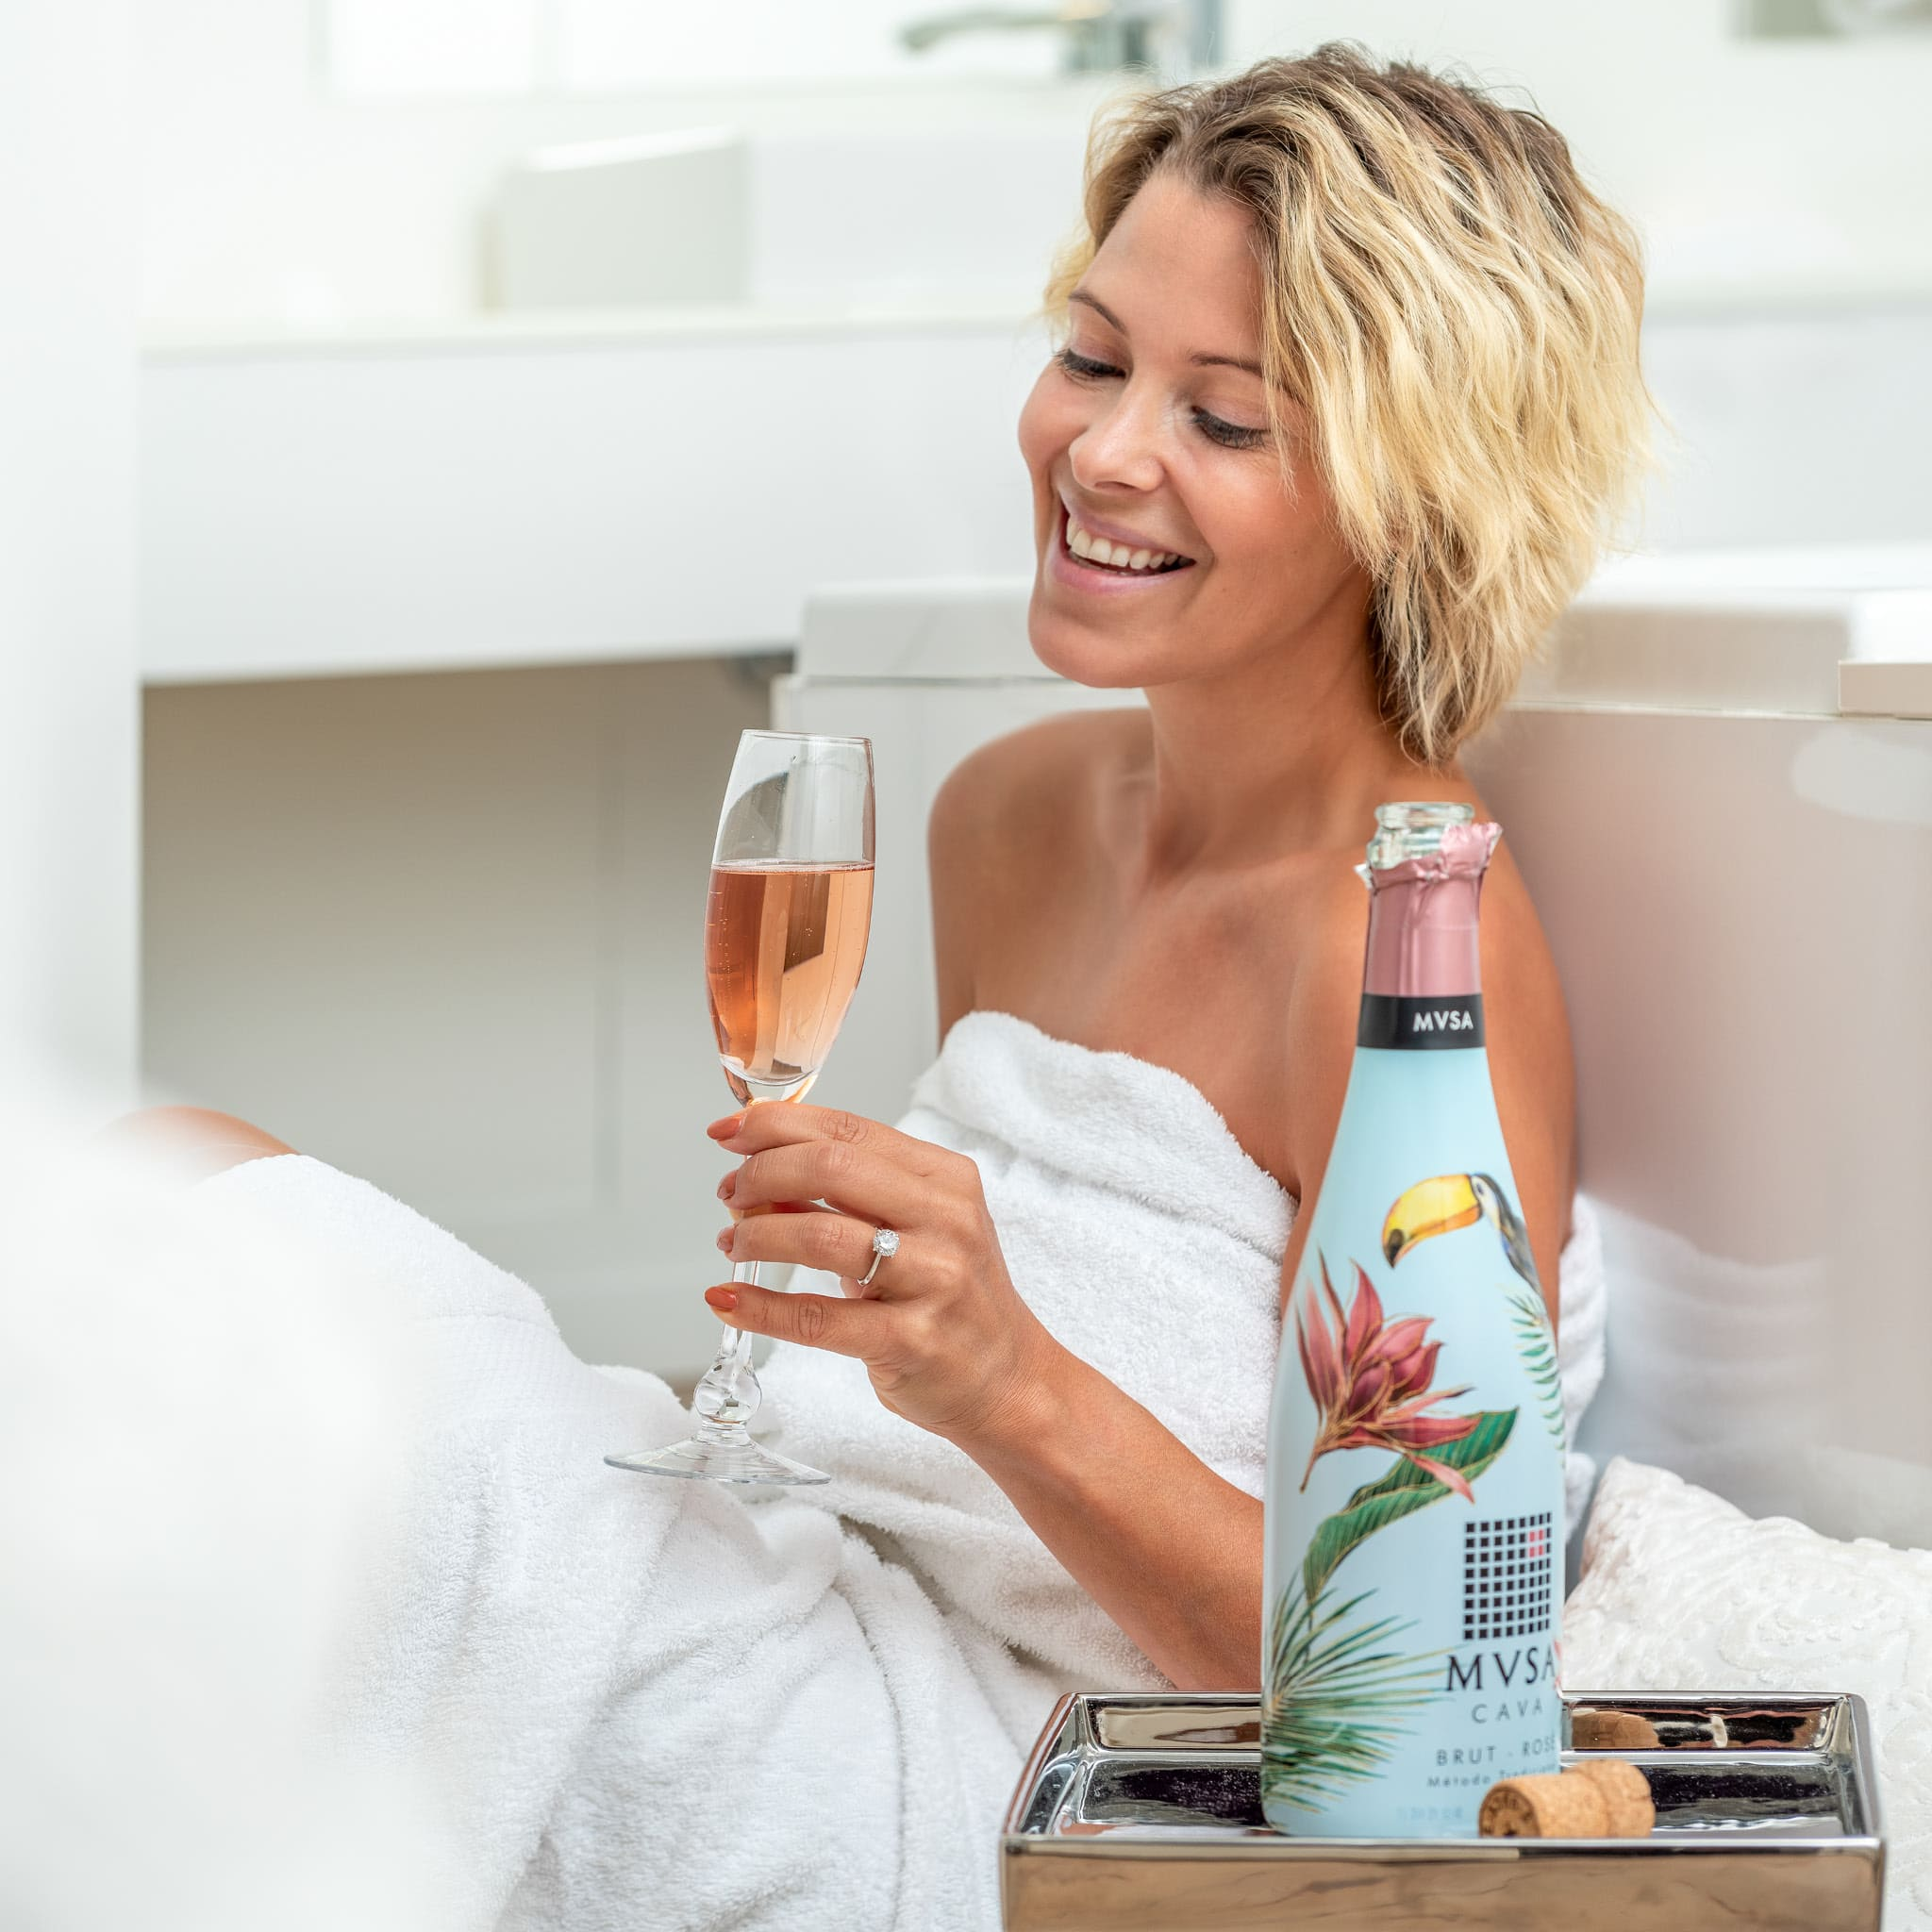 Photo woman with glass of MVSA Cava by Supermoon